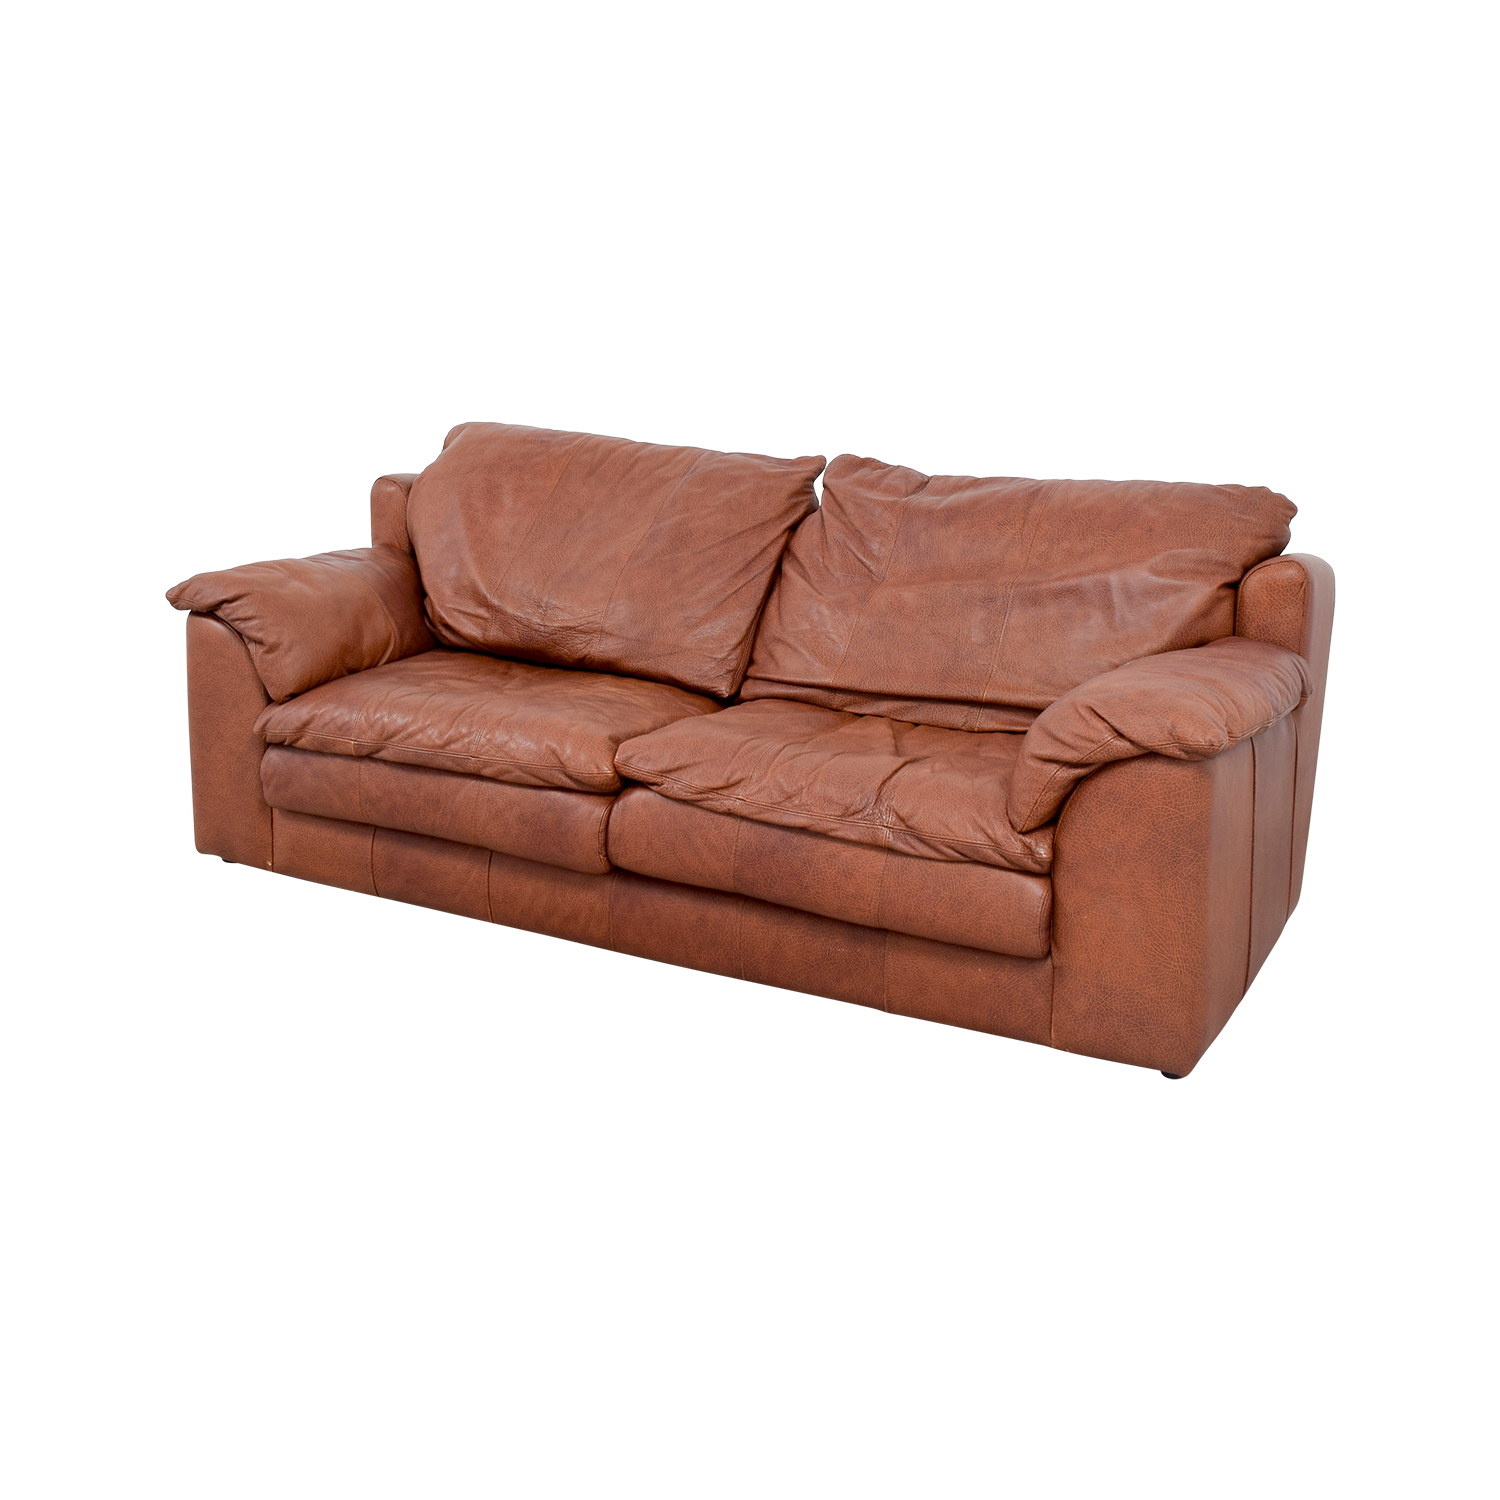 buy Rust Two-Cushion Leather Couch with Pillowed Arms online